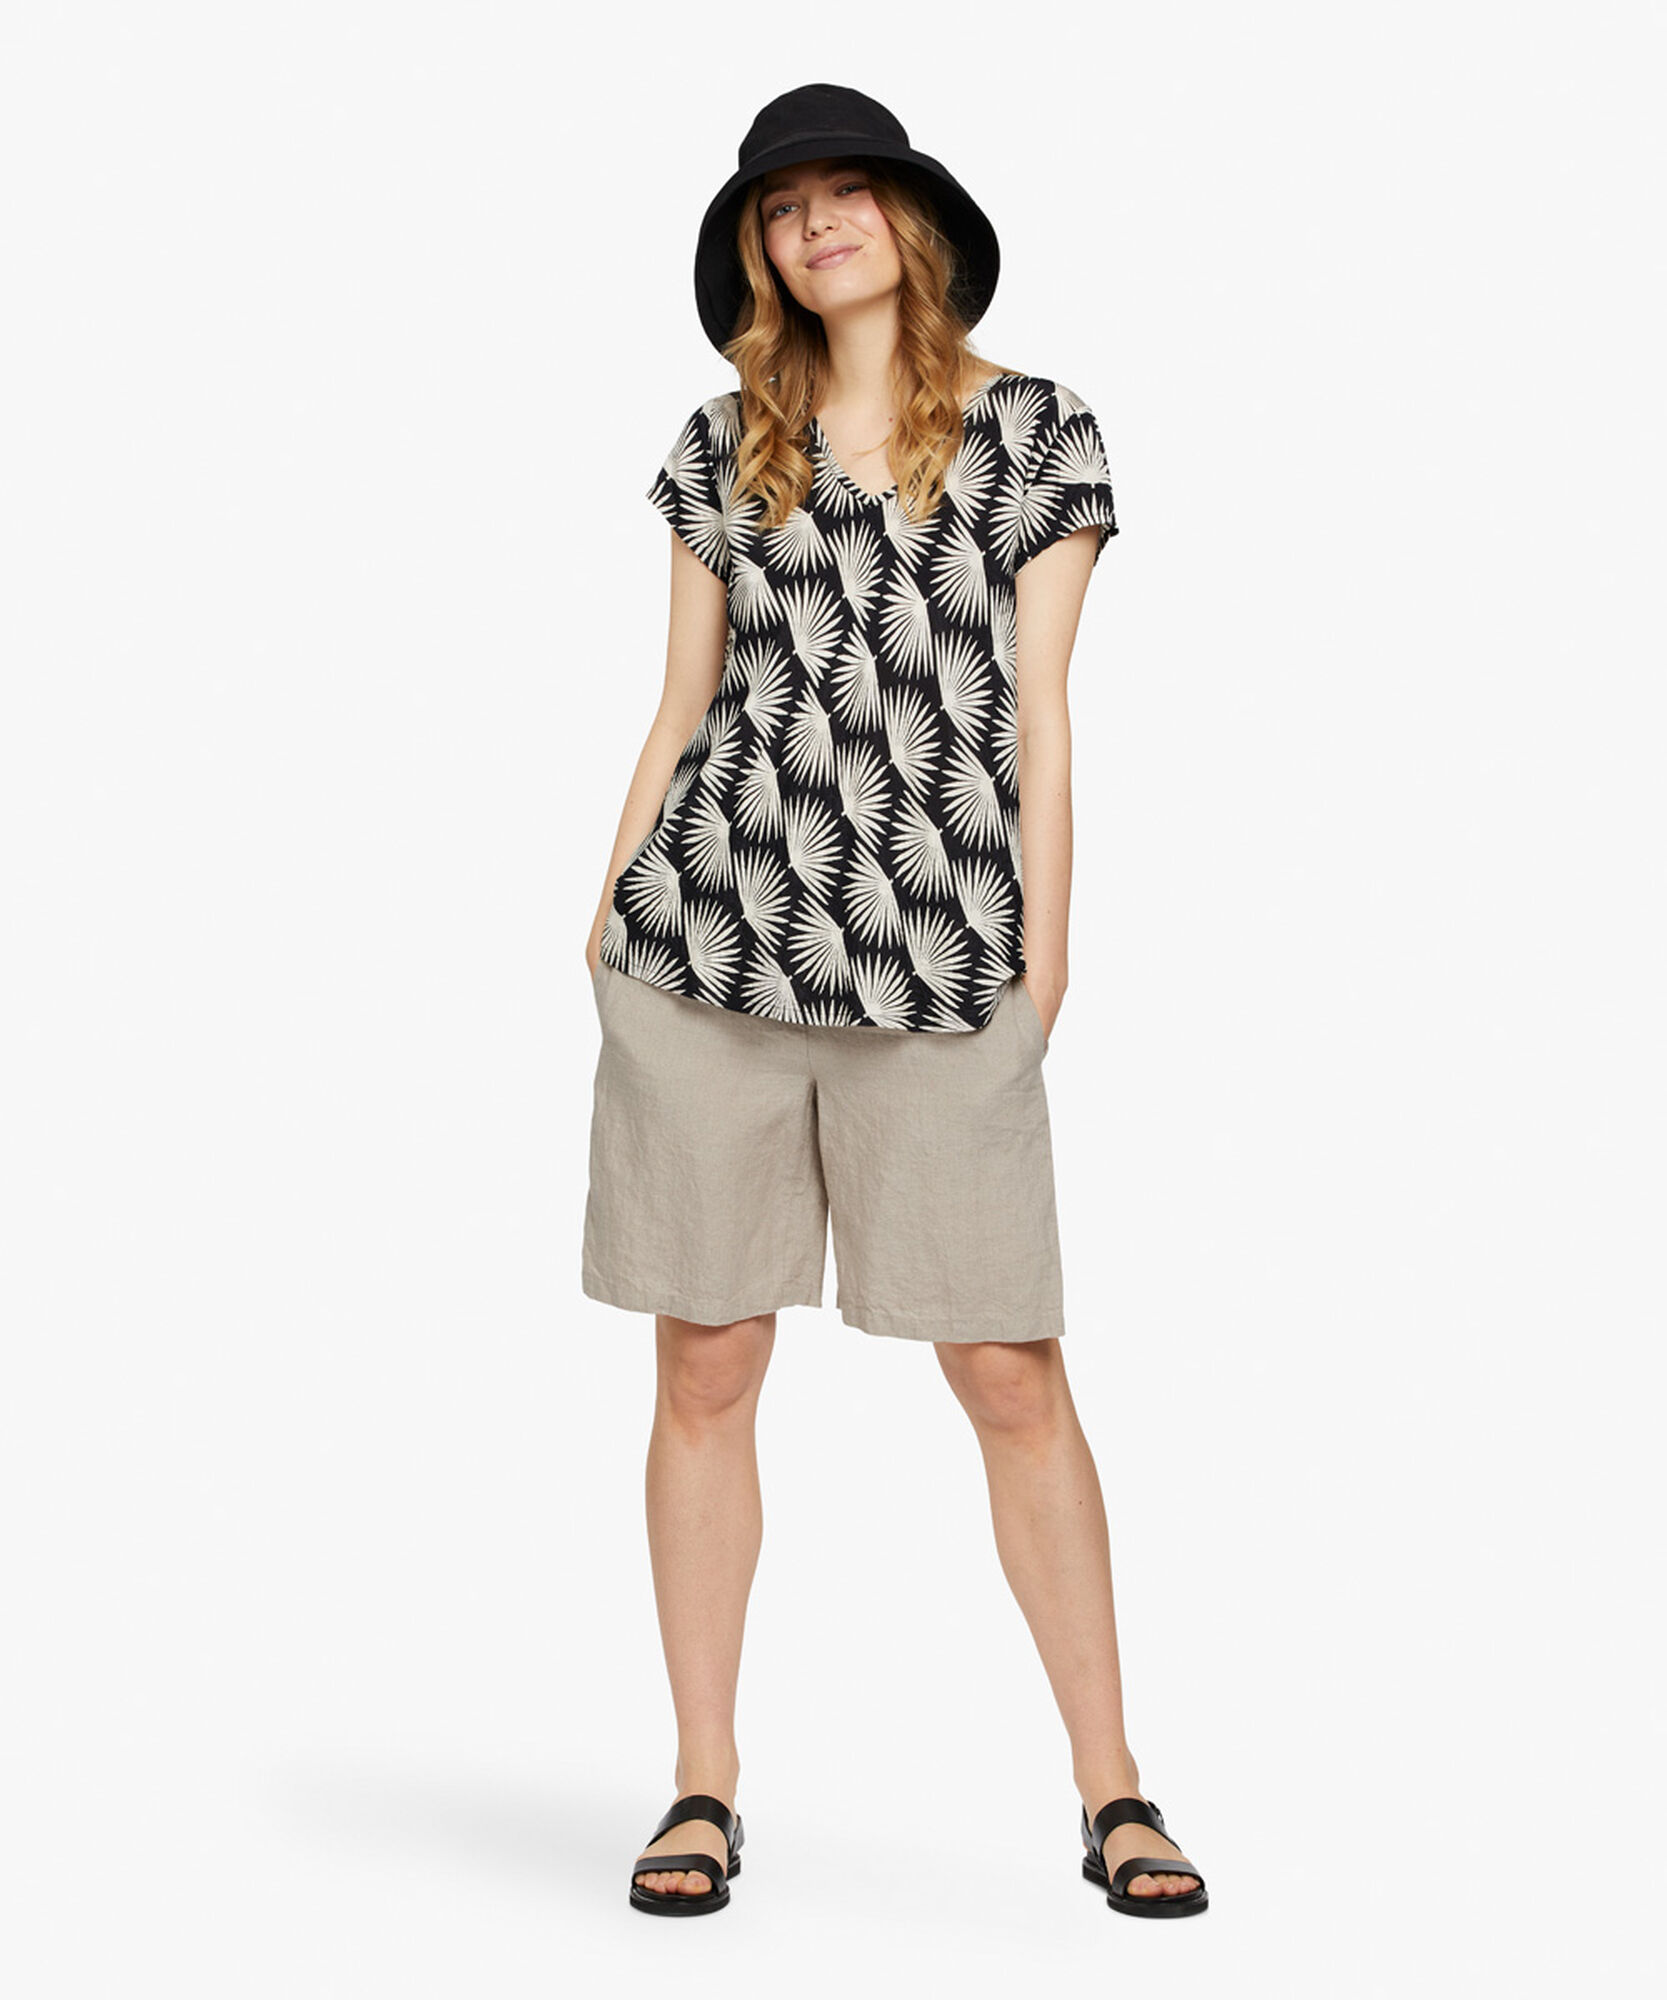 KALLO SHIRT, Black, hi-res